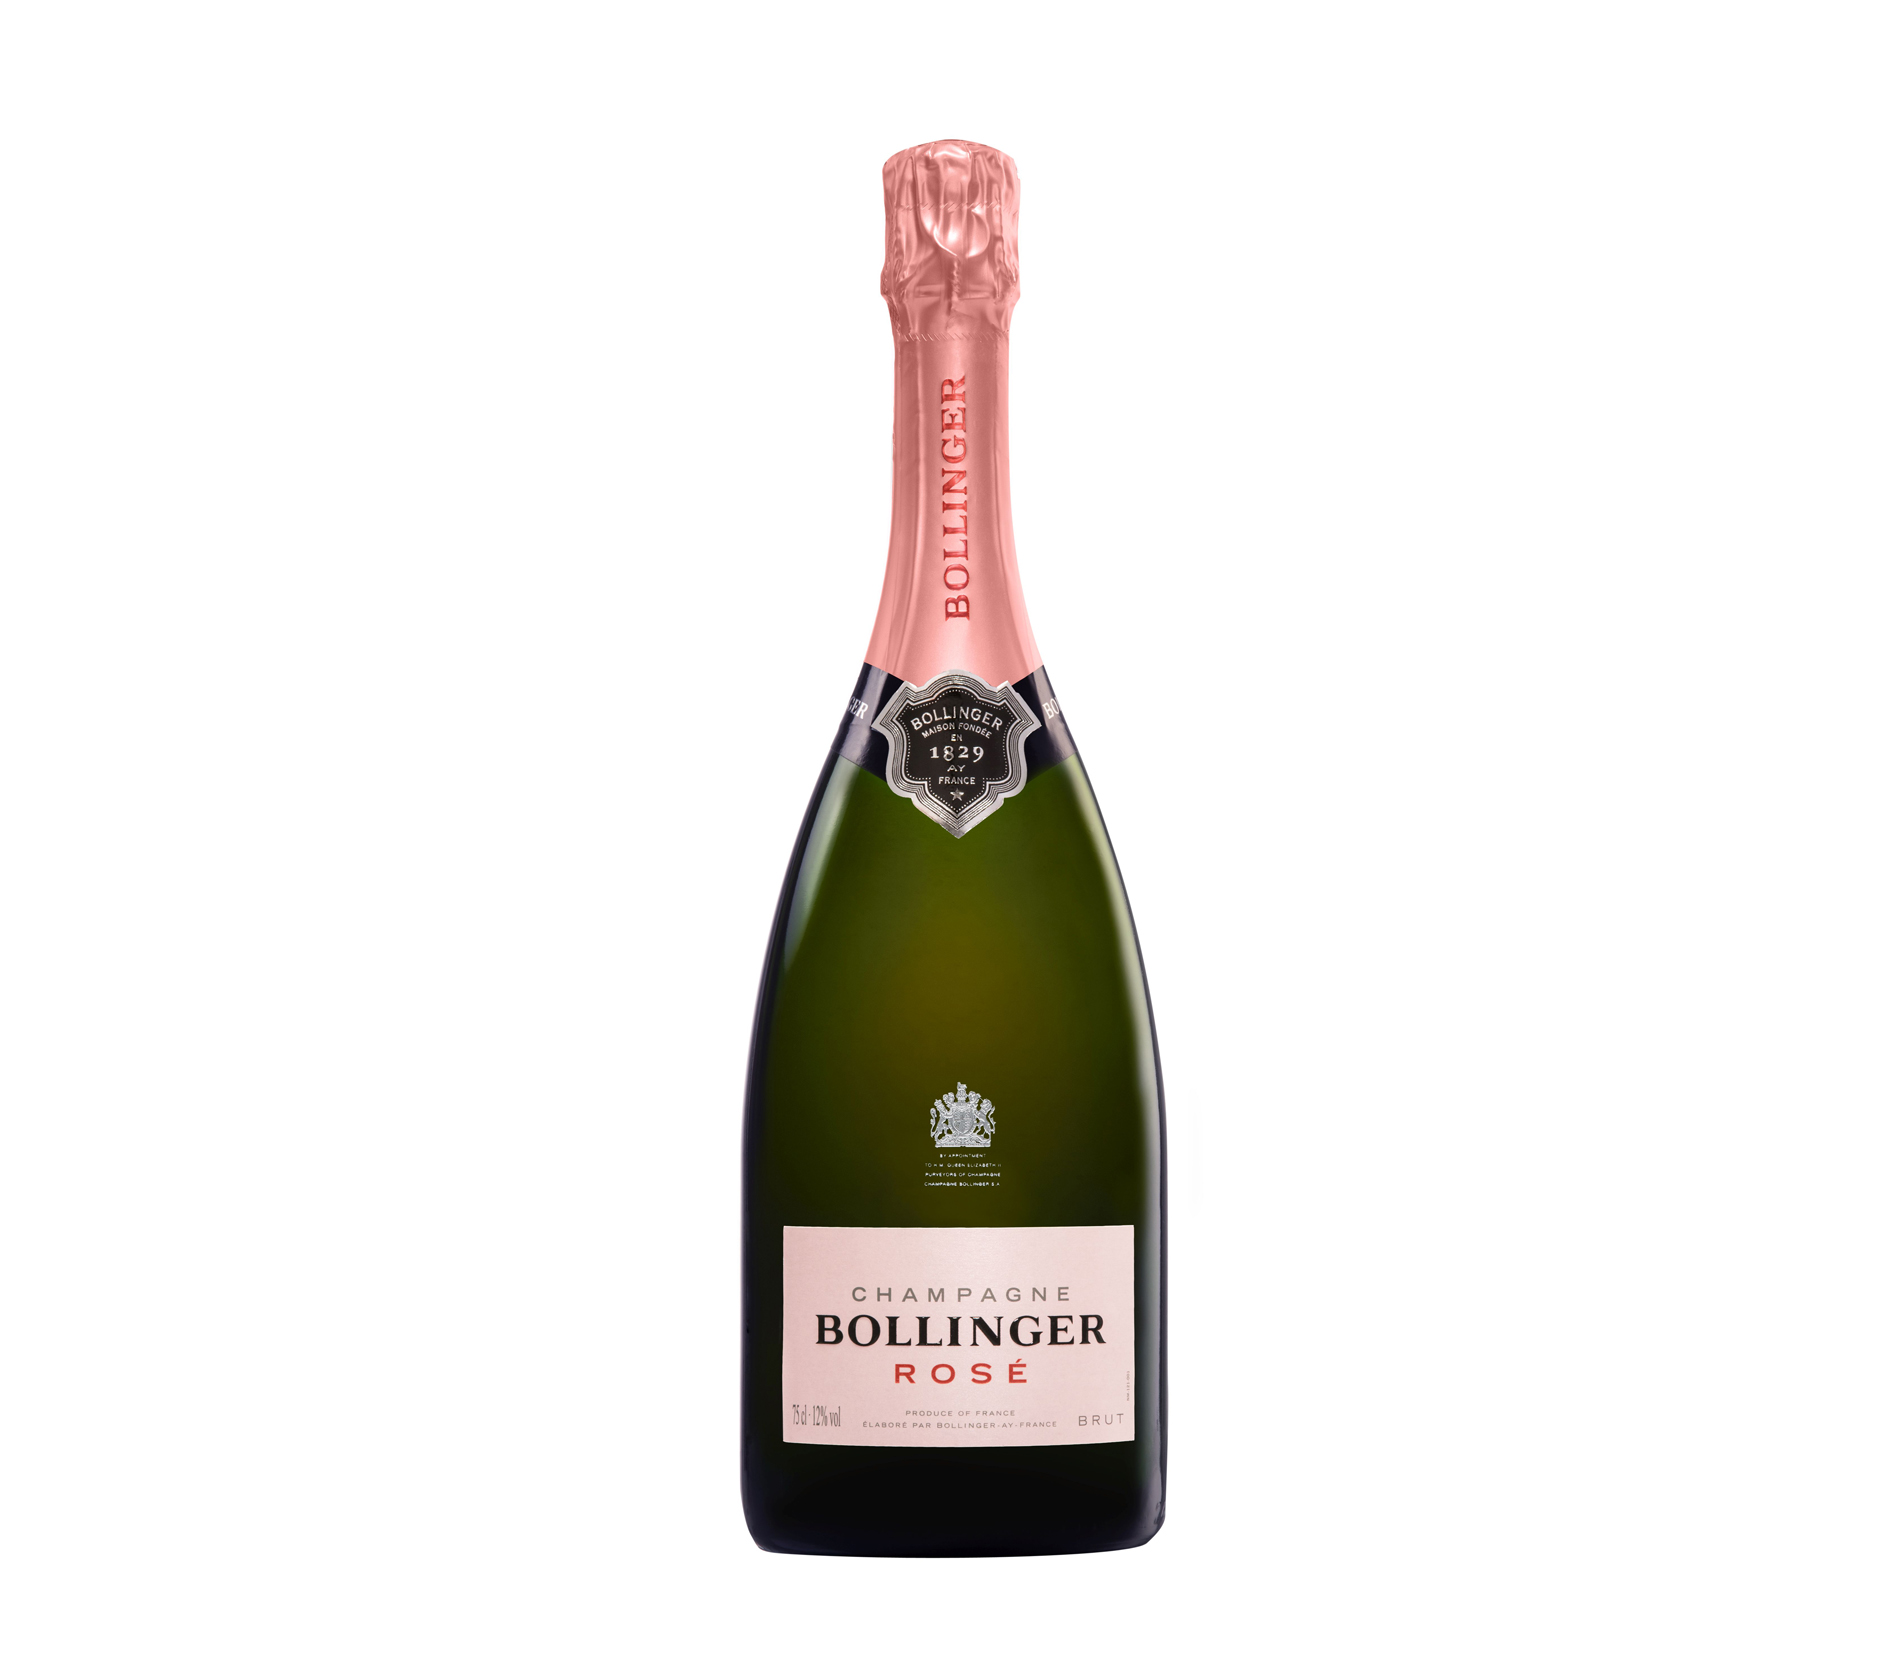 Champagne Bollinger Rose, France